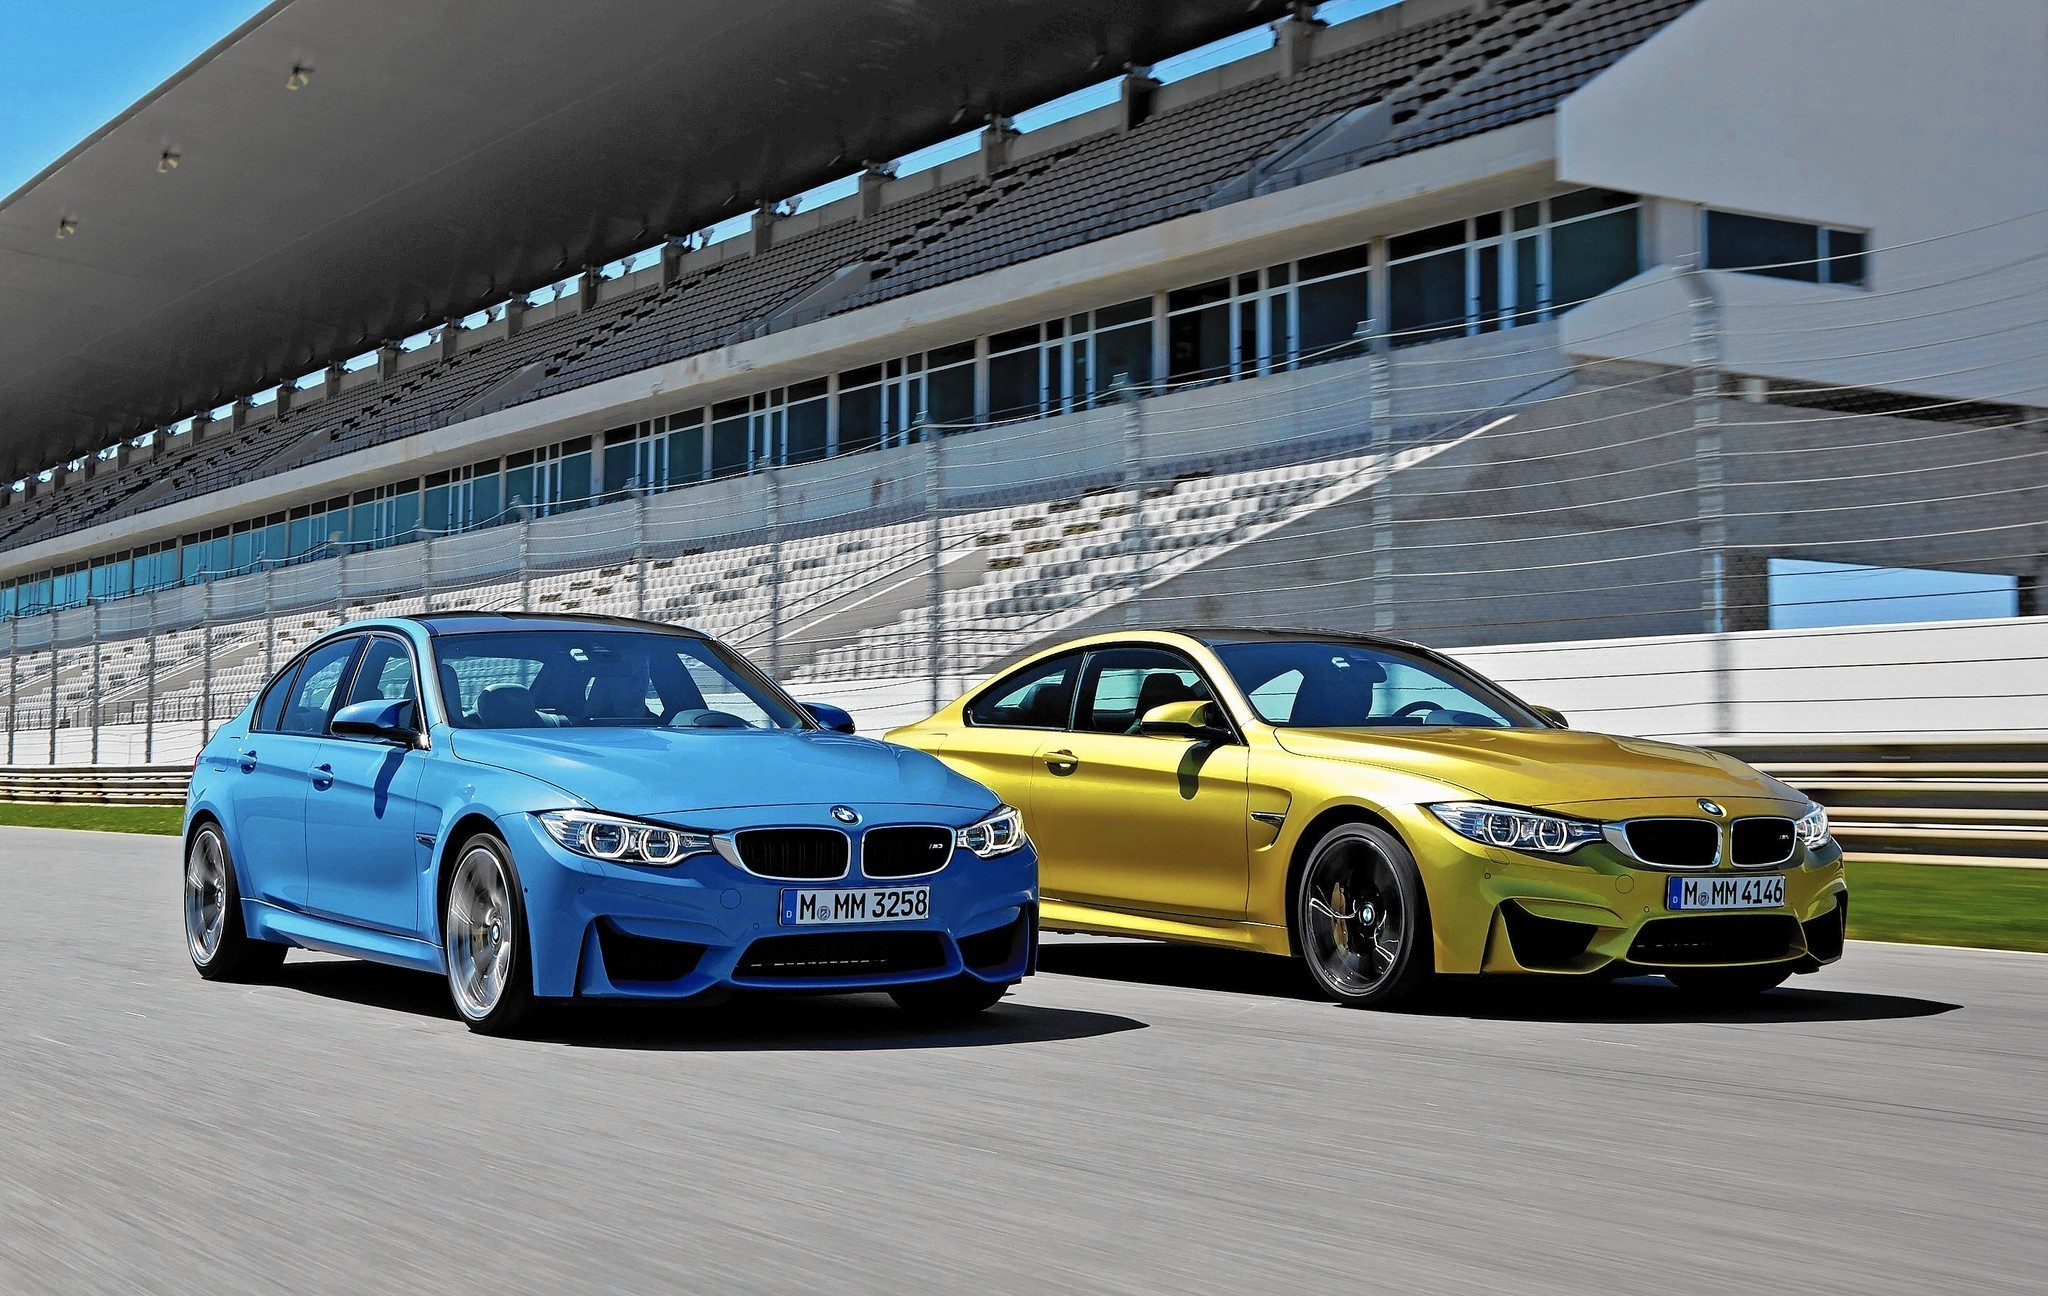 2017 Bmw M3 And M4 Pricing And Product Updates Bmwusa